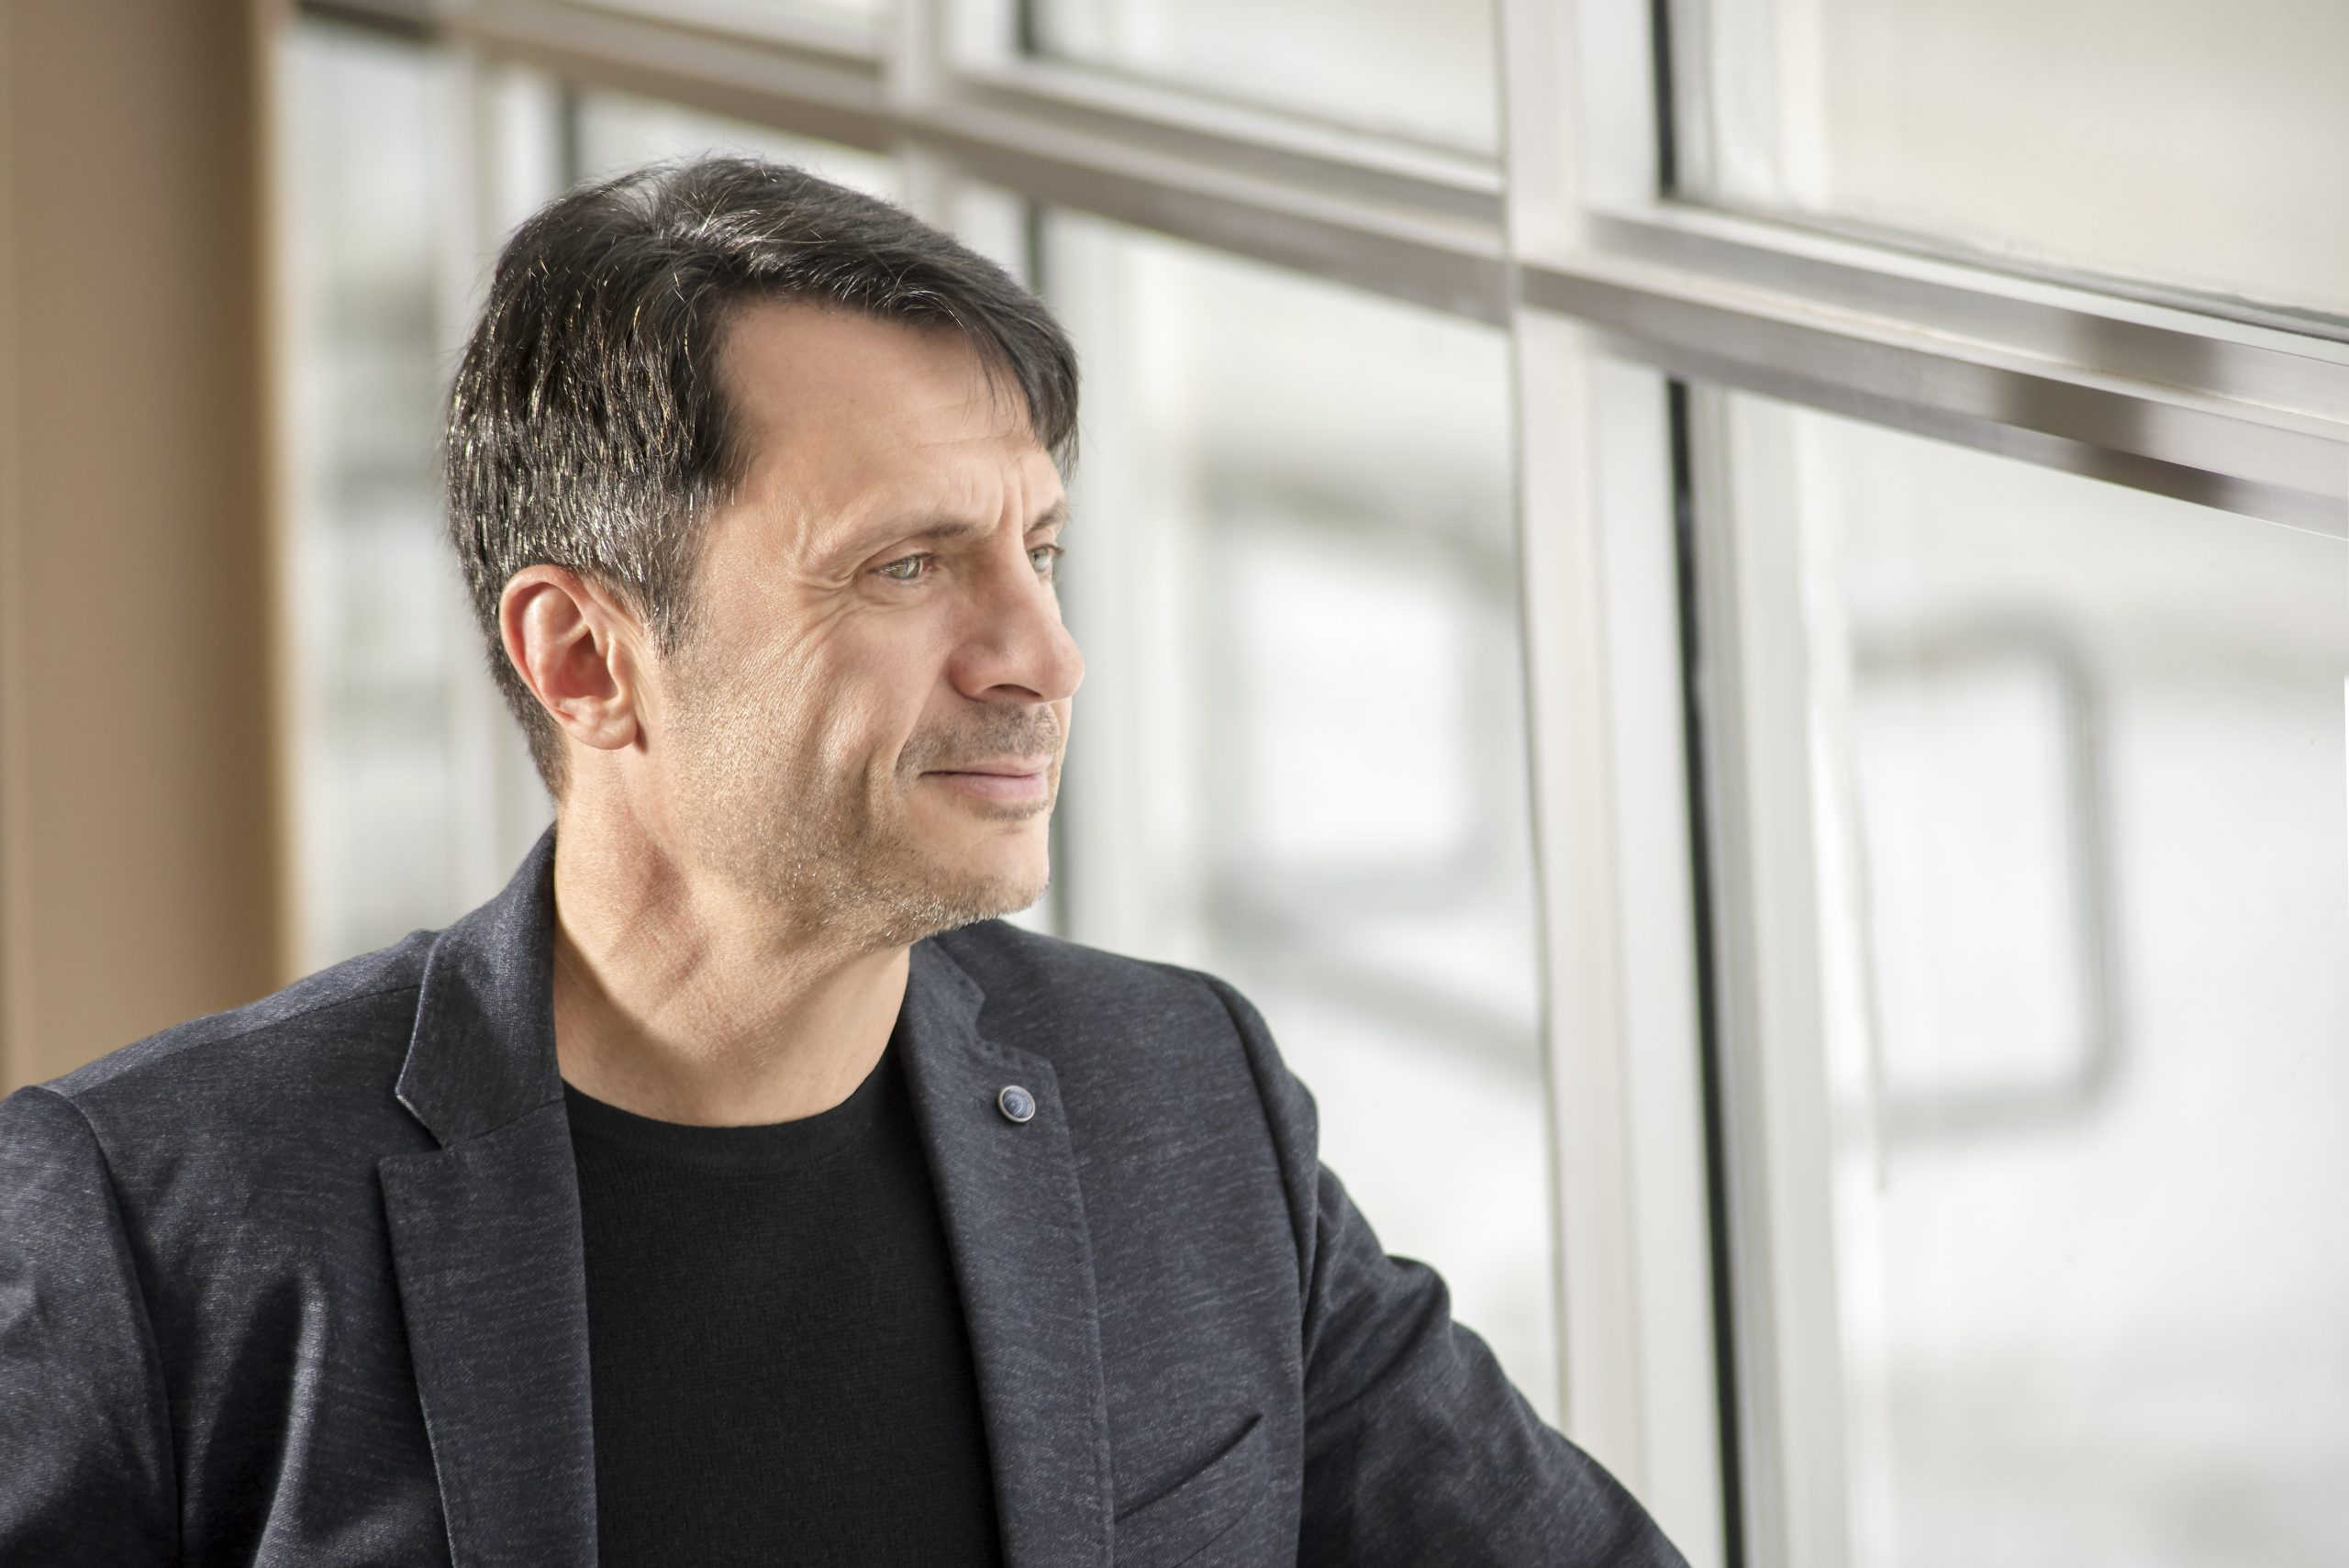 Registered Doctoral Psychologist Dr. Thomas Hadjistavropoulos is the 2021 recipient of the Canadian Pain Society's Pain Awareness Award. (Photo by Trevor Hopkin)